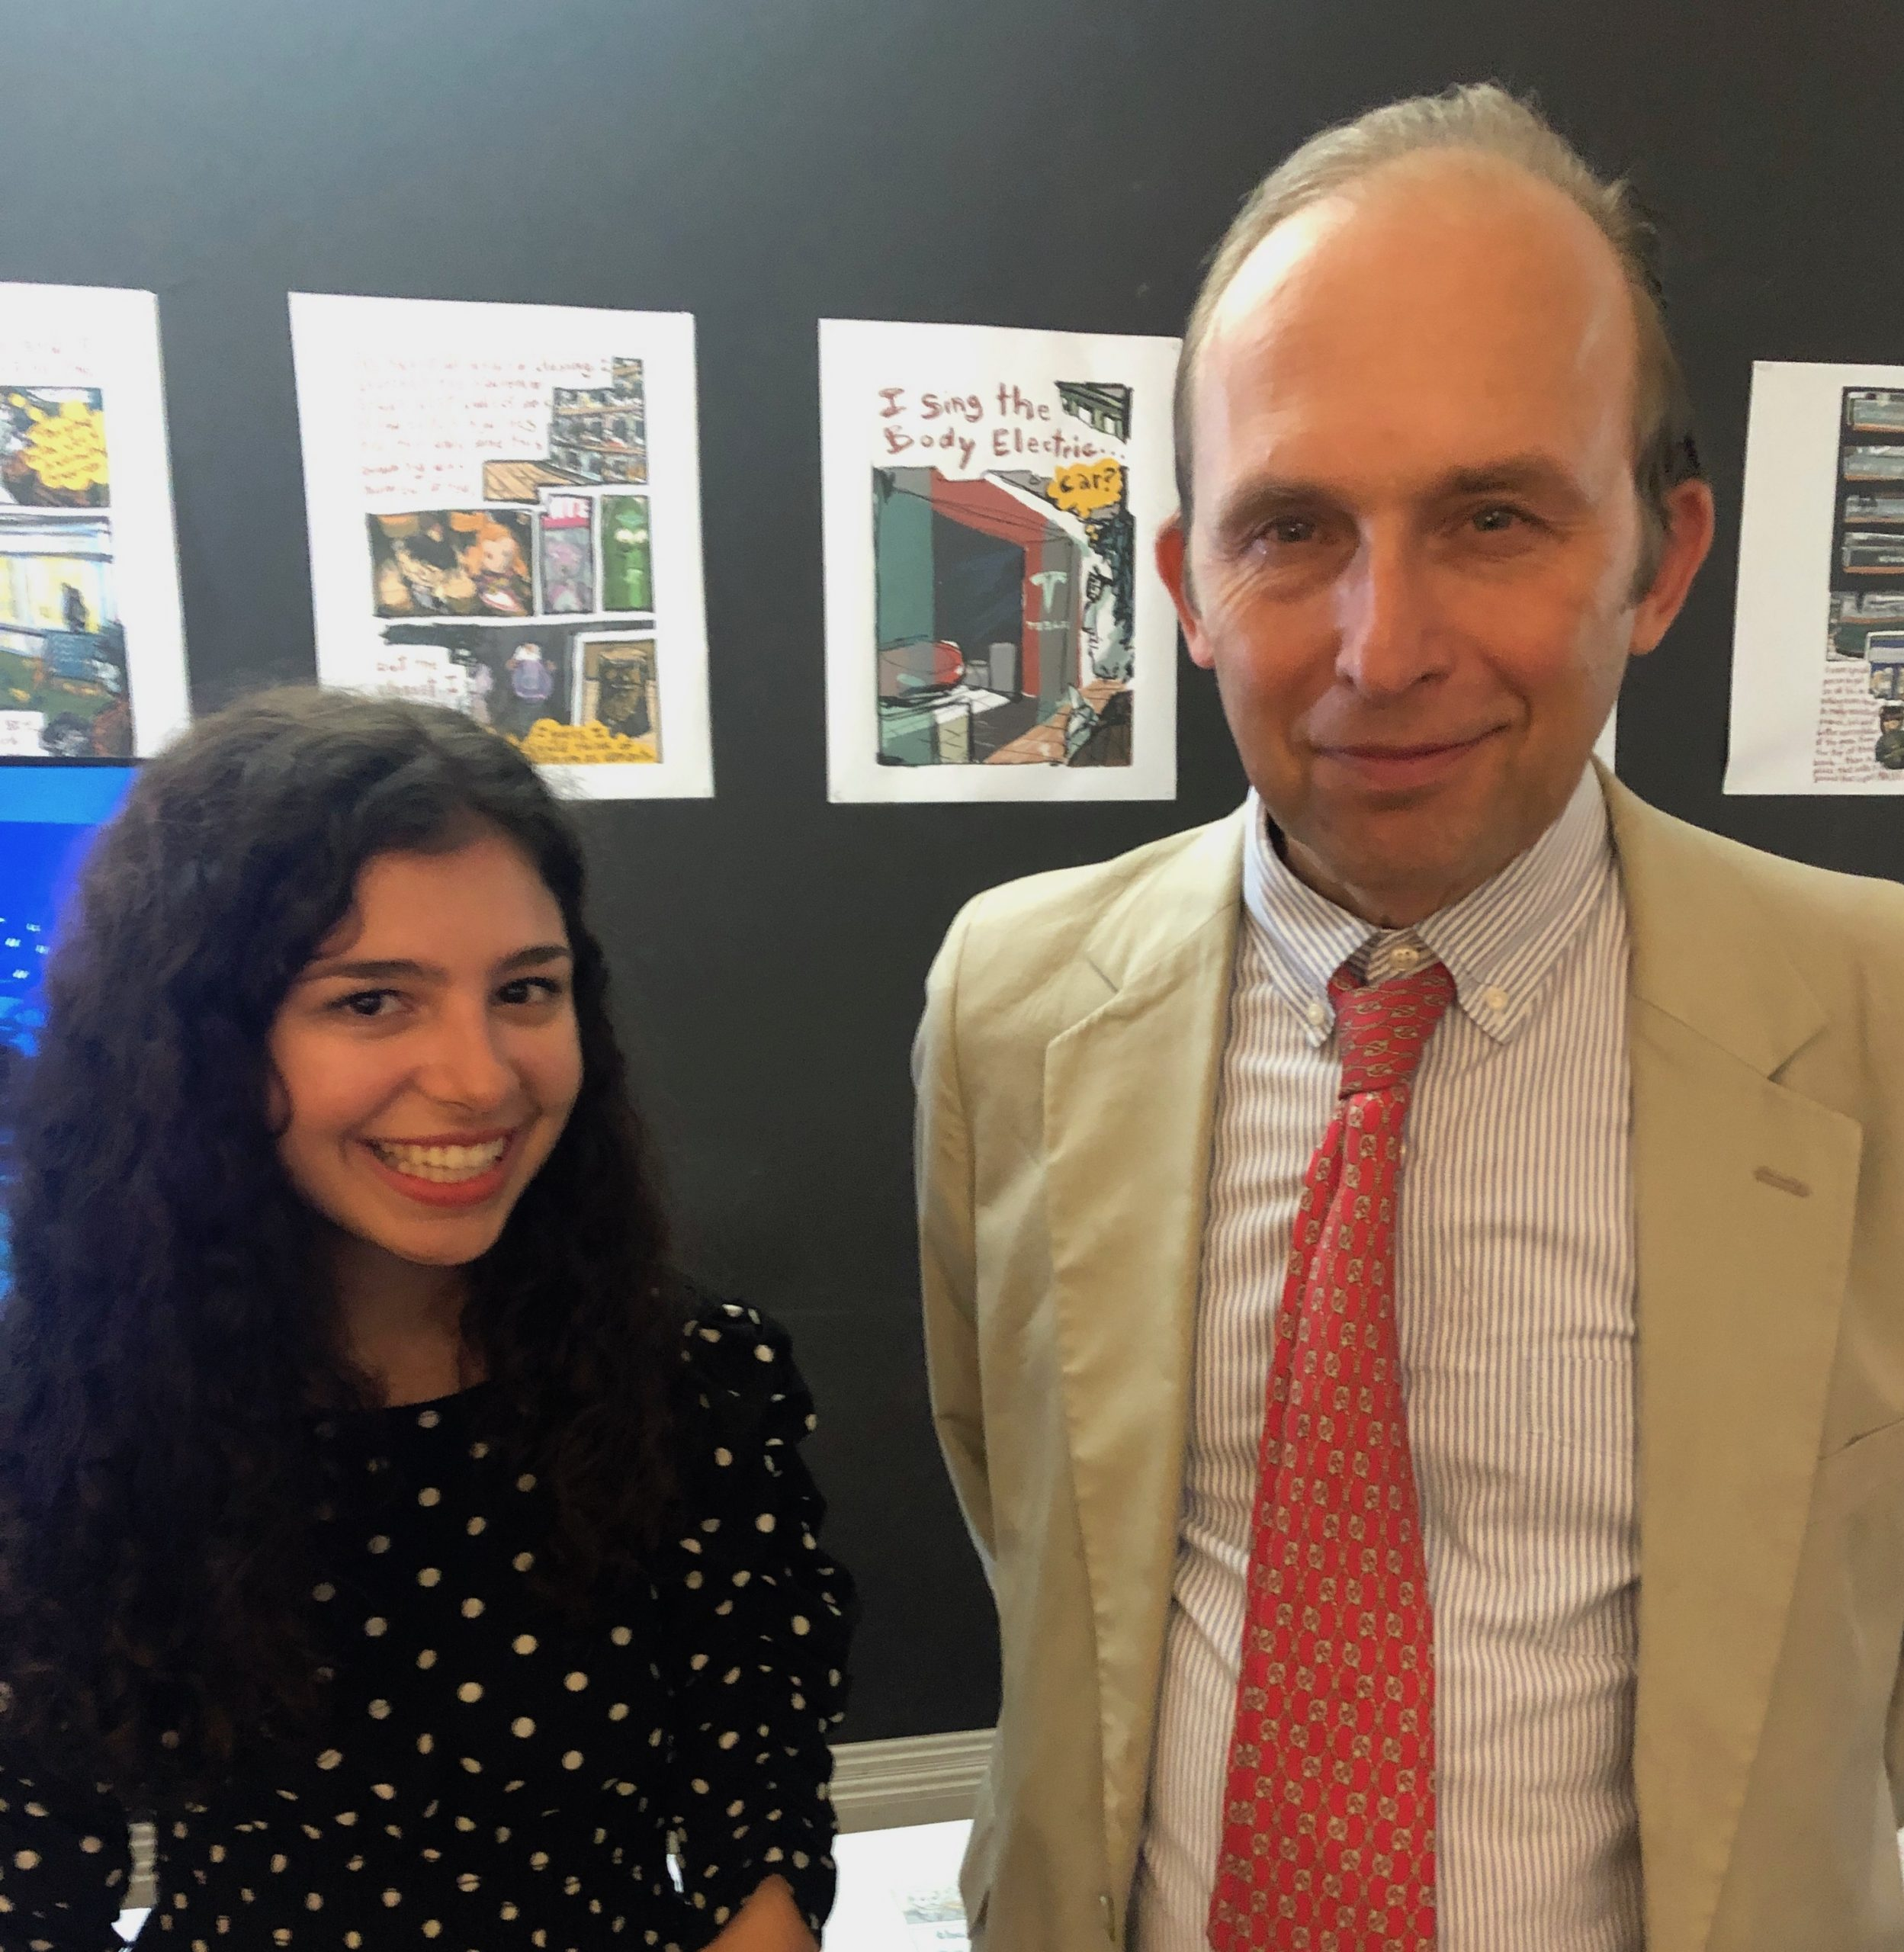 Distingushed Professor Ted Widmer with student Carina D'Urso '22